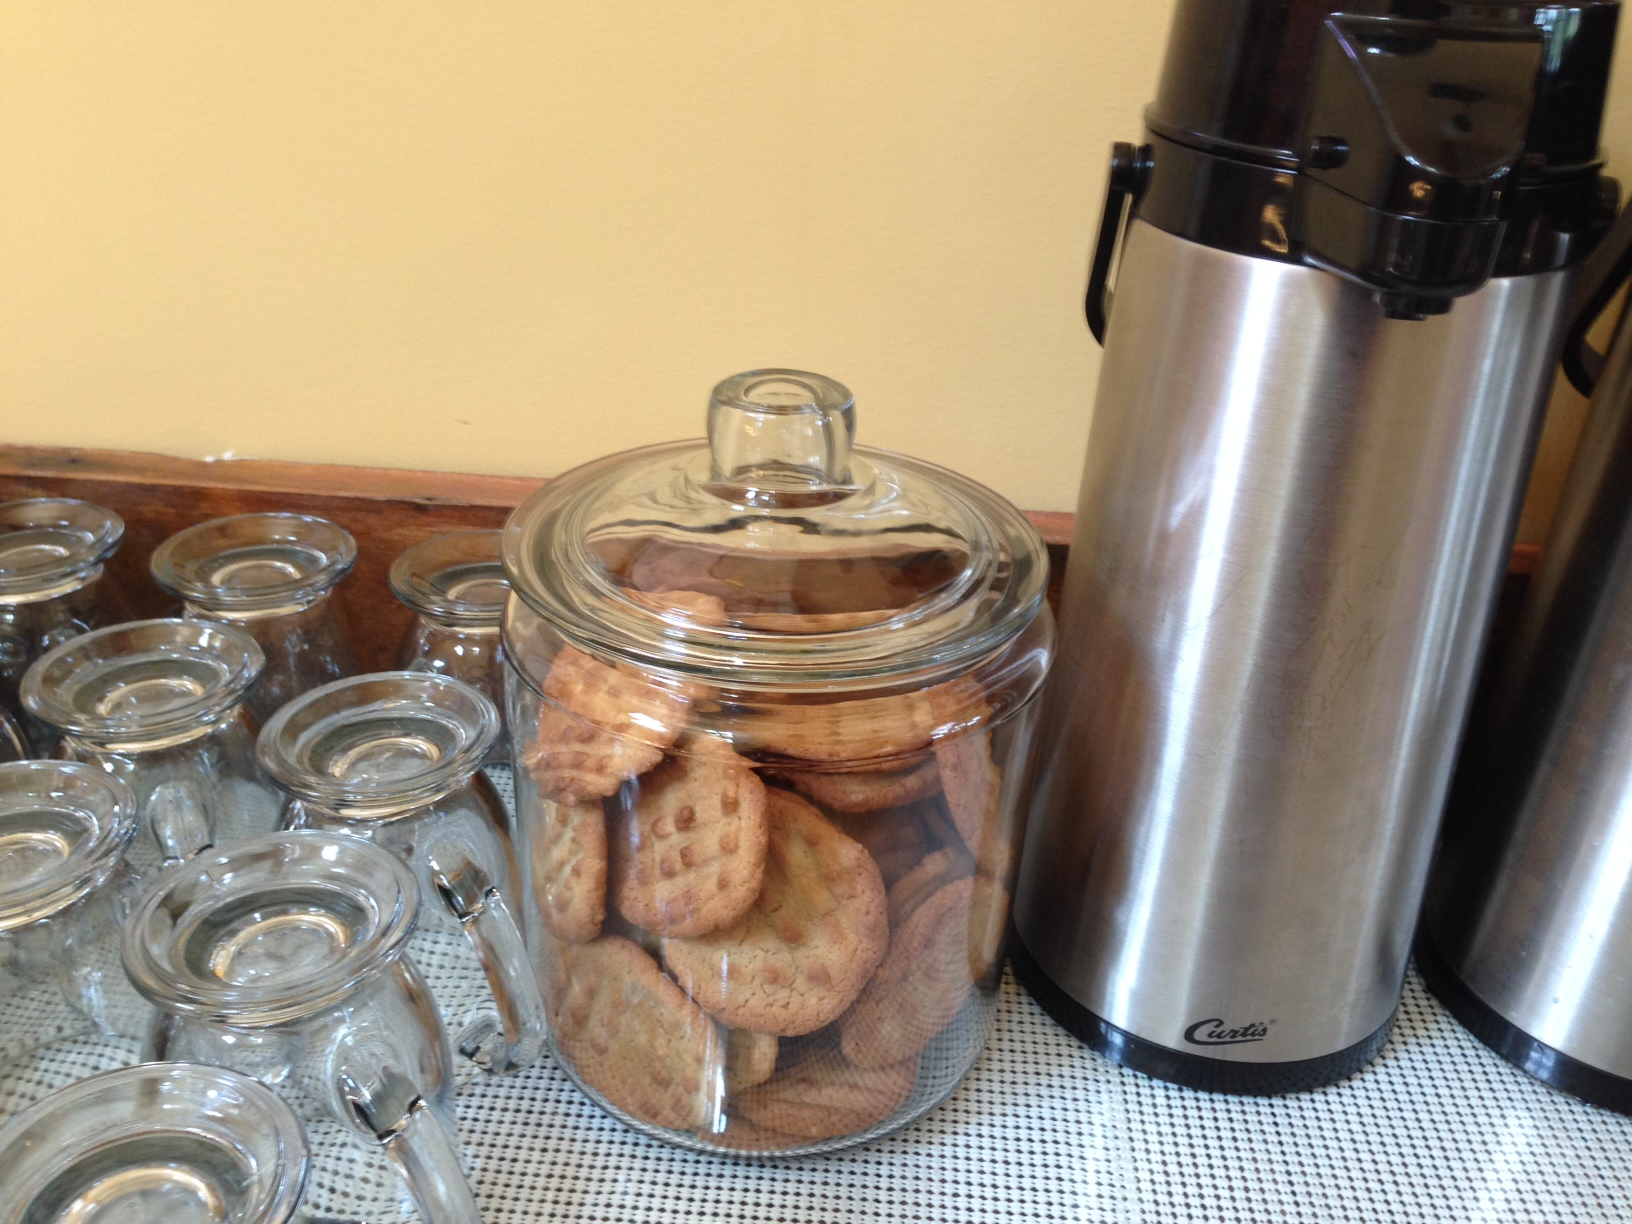 We will never forget the bottomless cookie jar and bottomless coffee carafes!